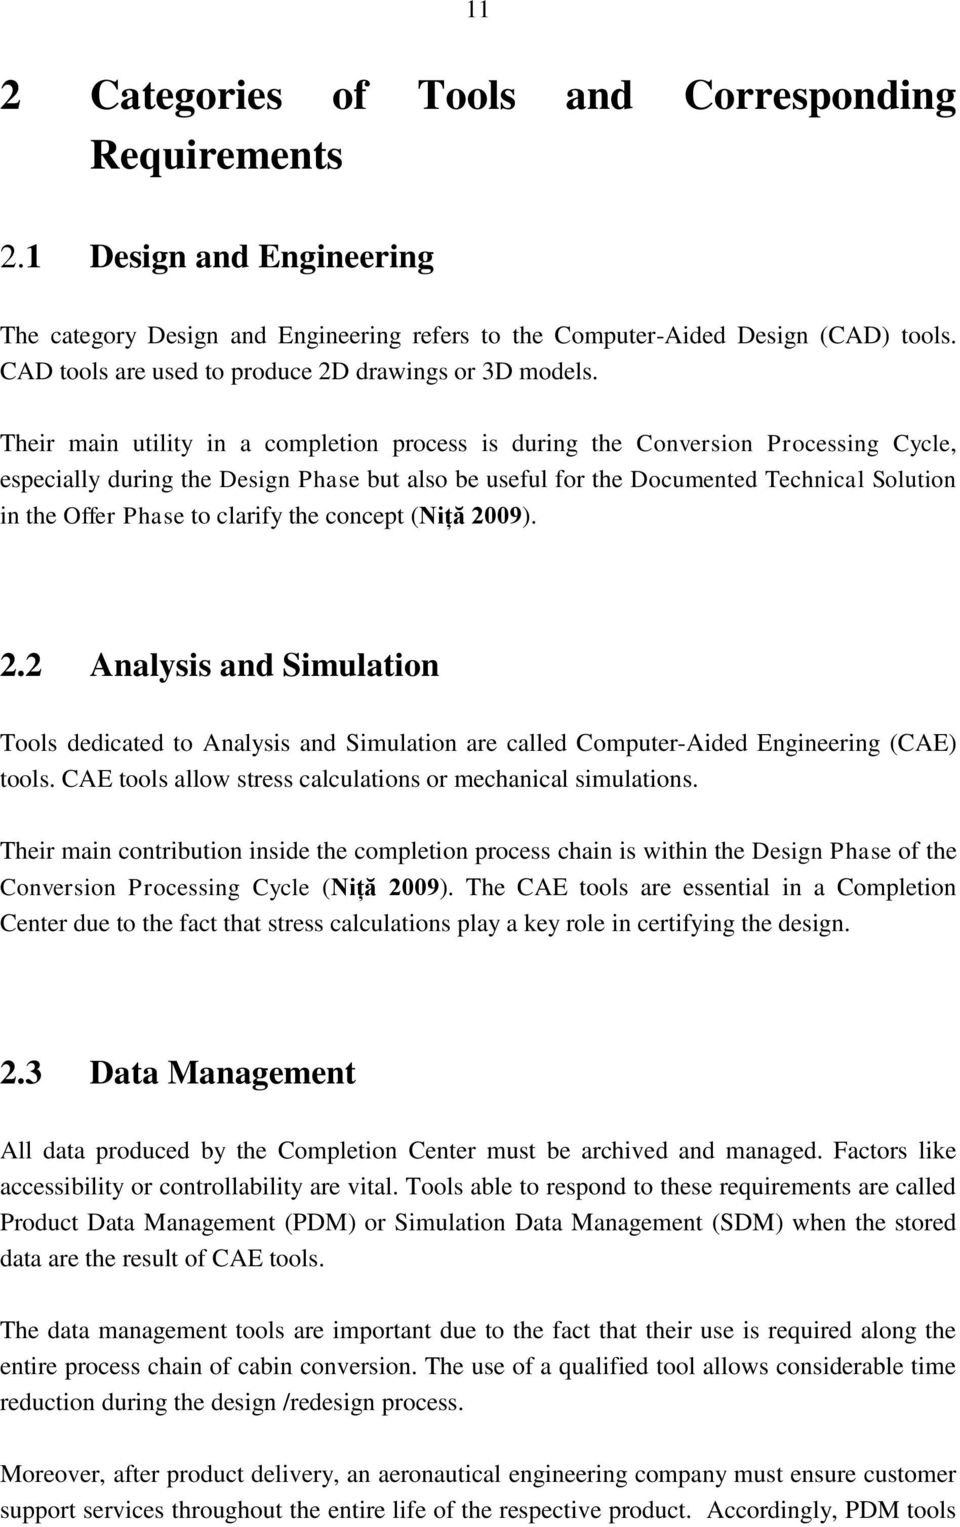 Research, Analysis, Evaluation and Selection of Tools for a